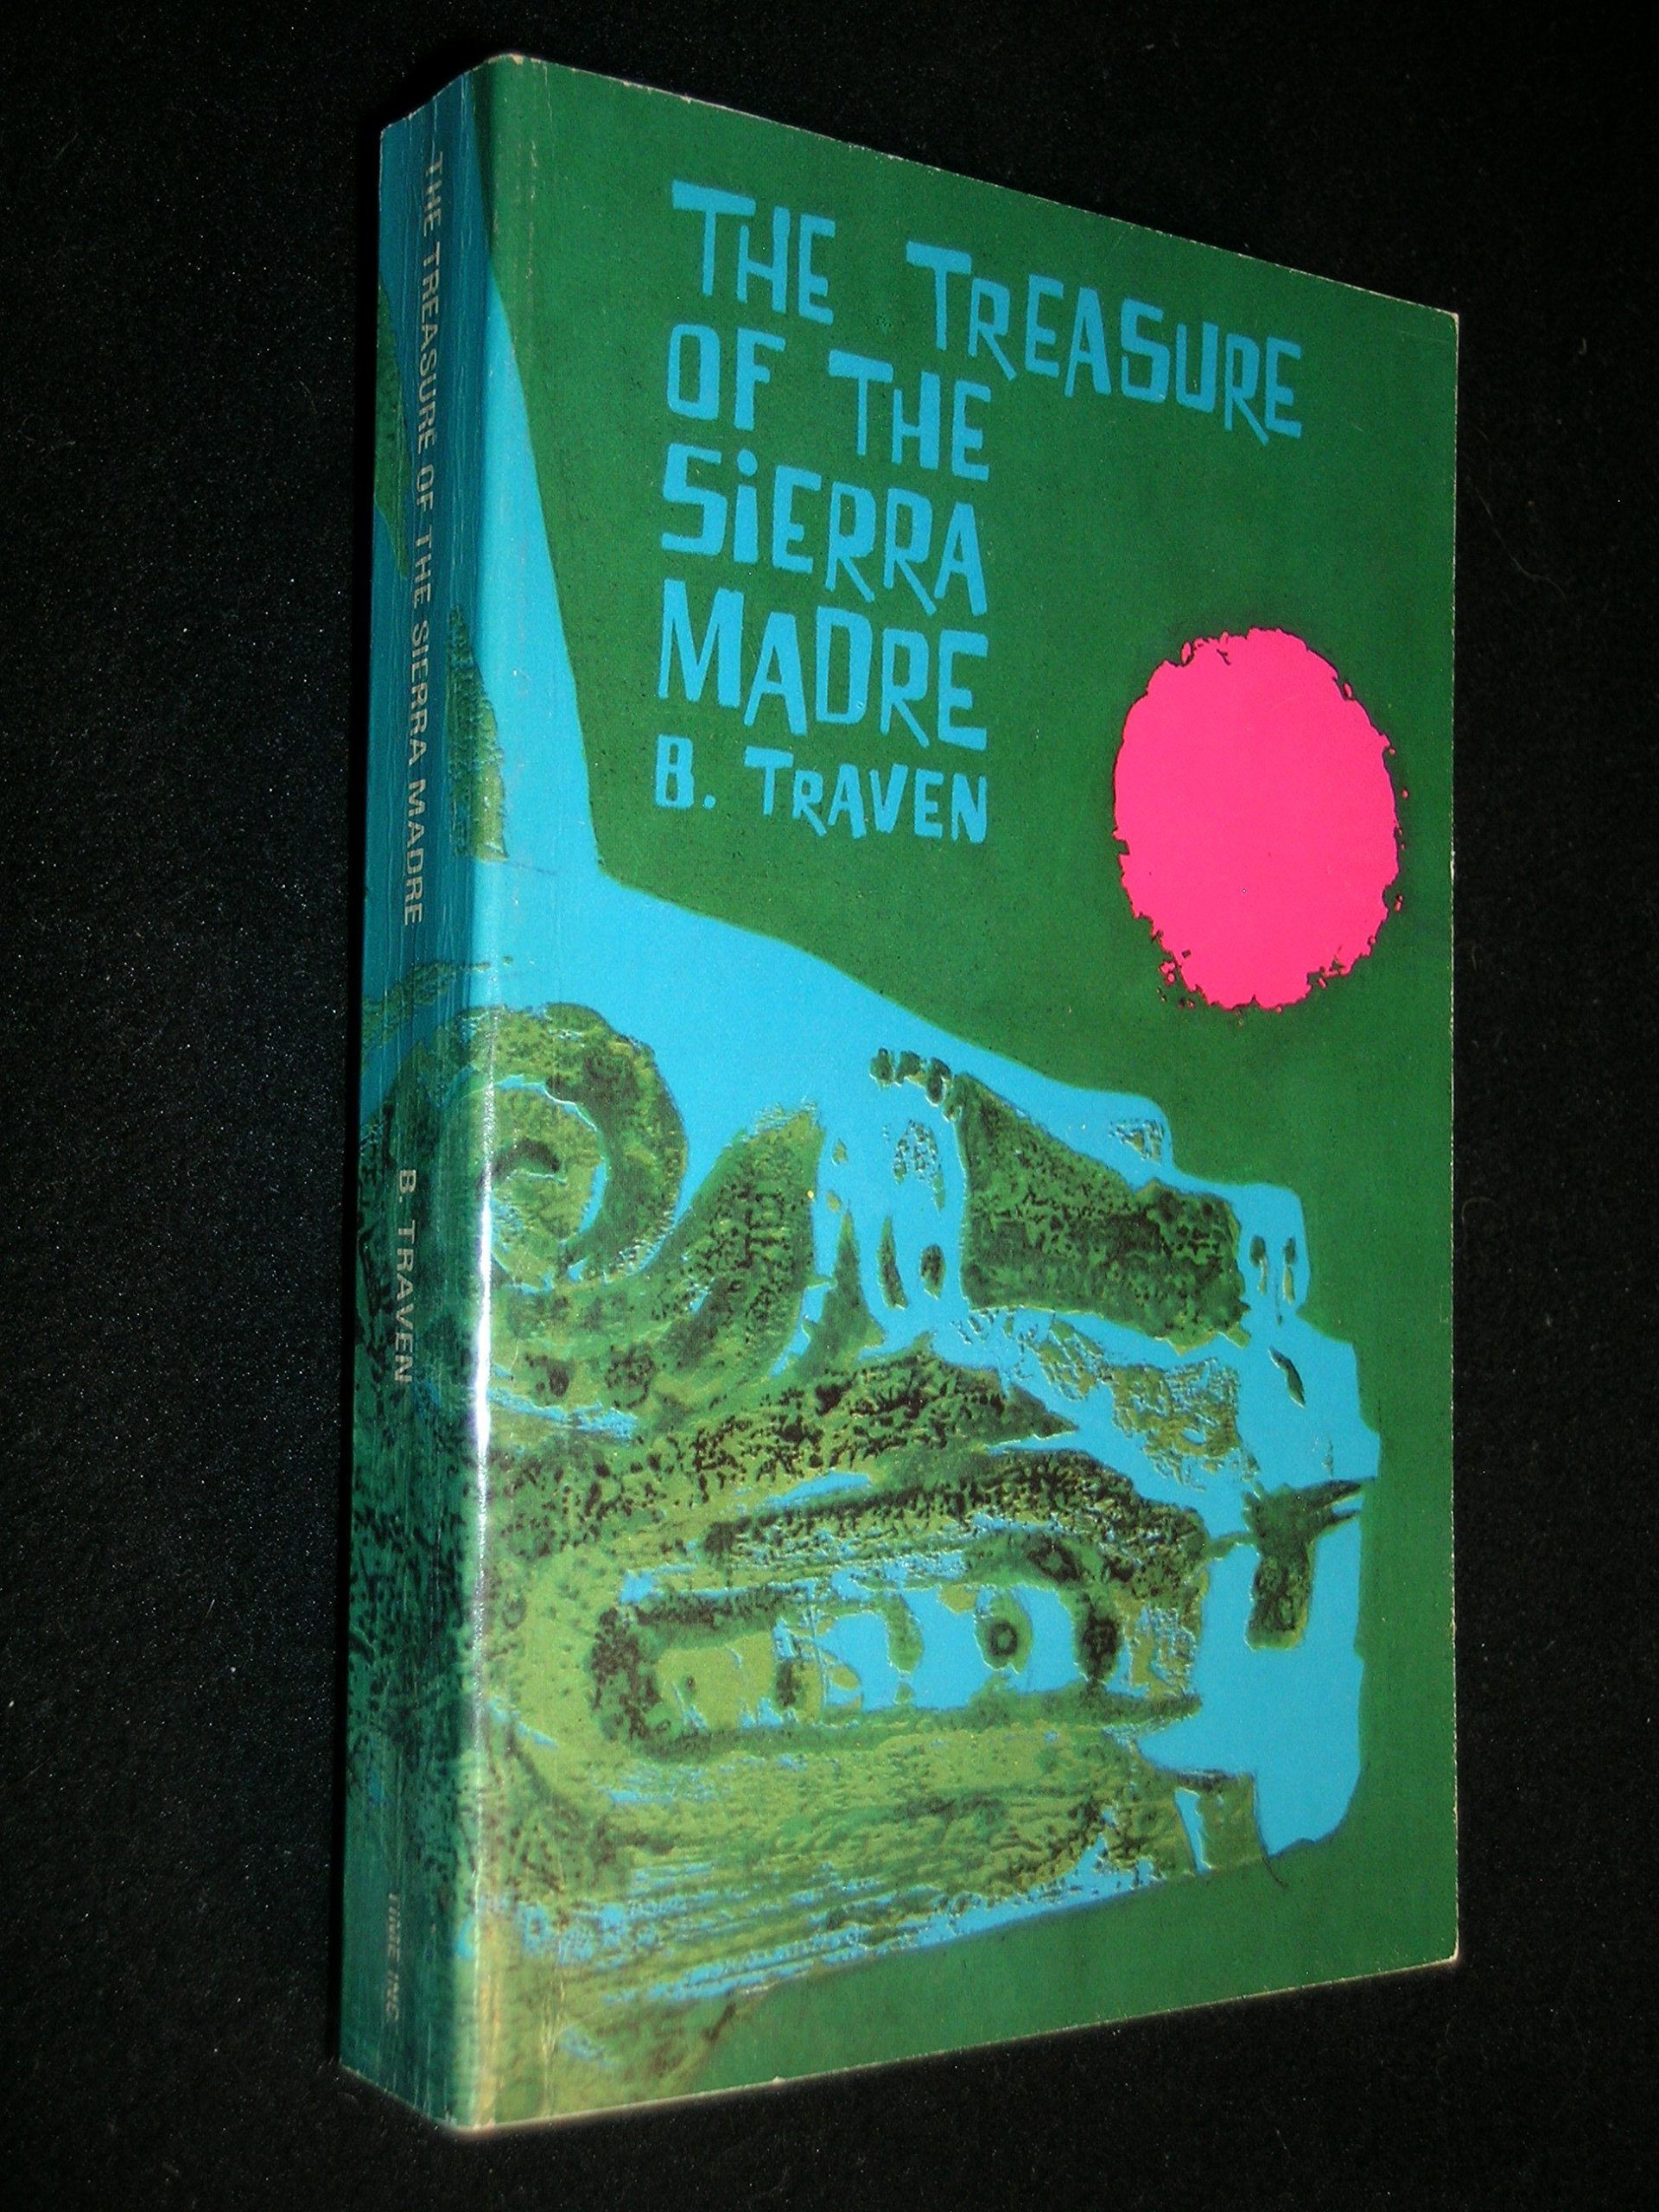 The Treasure of the Sierra Madre Novel by B. Traven